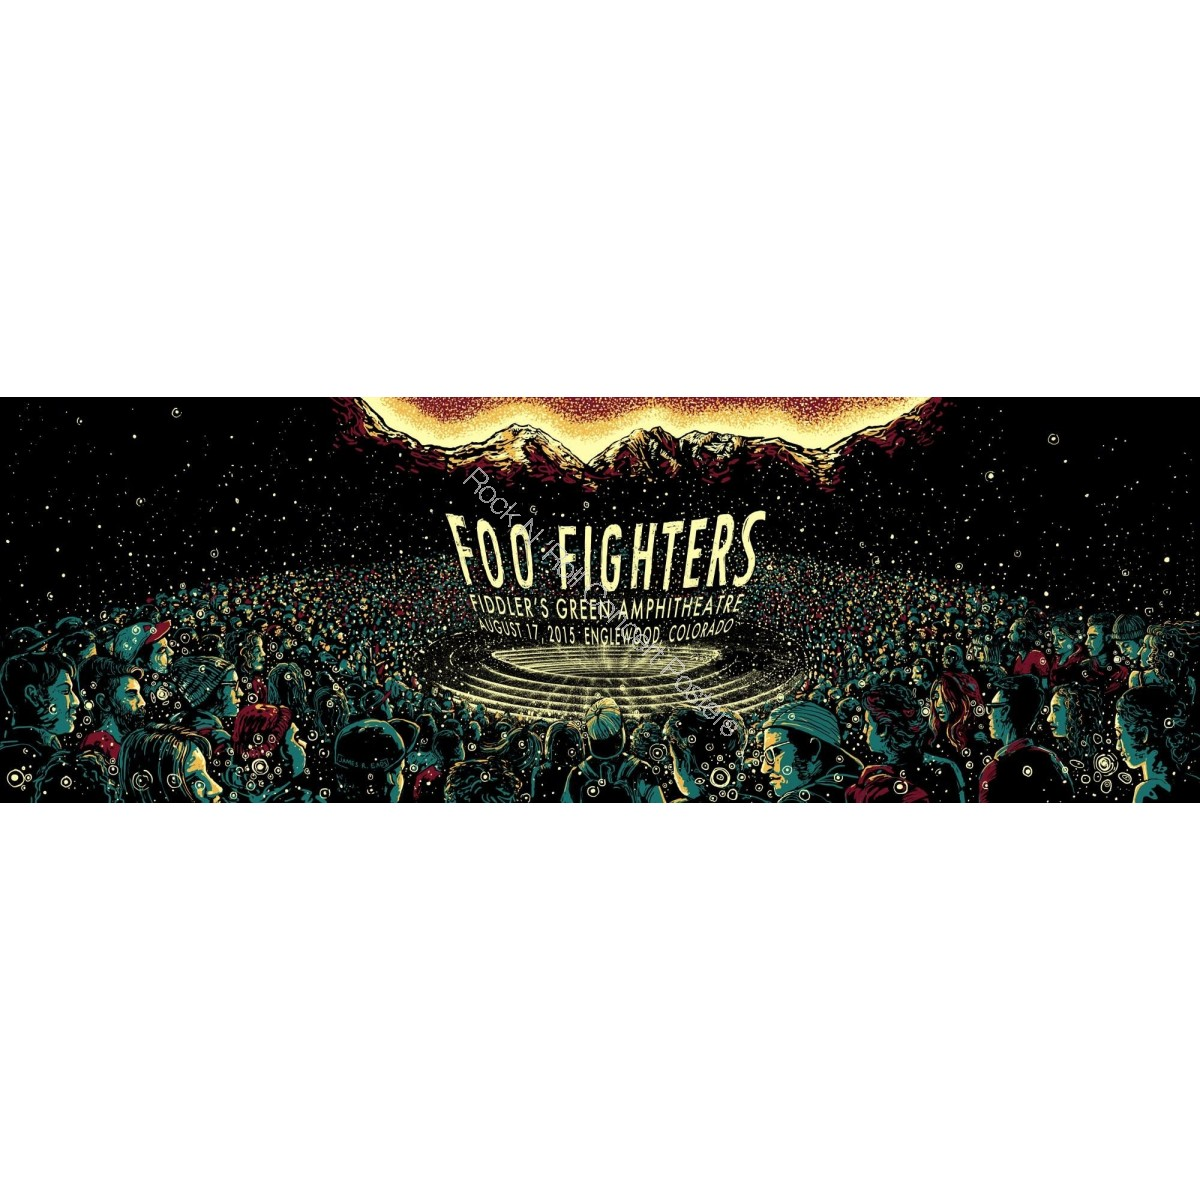 Foo Fighters Fiddler's Green Englewood / Denver Colorado 8/17/15 Night 2 Poster S/N 1st Edition